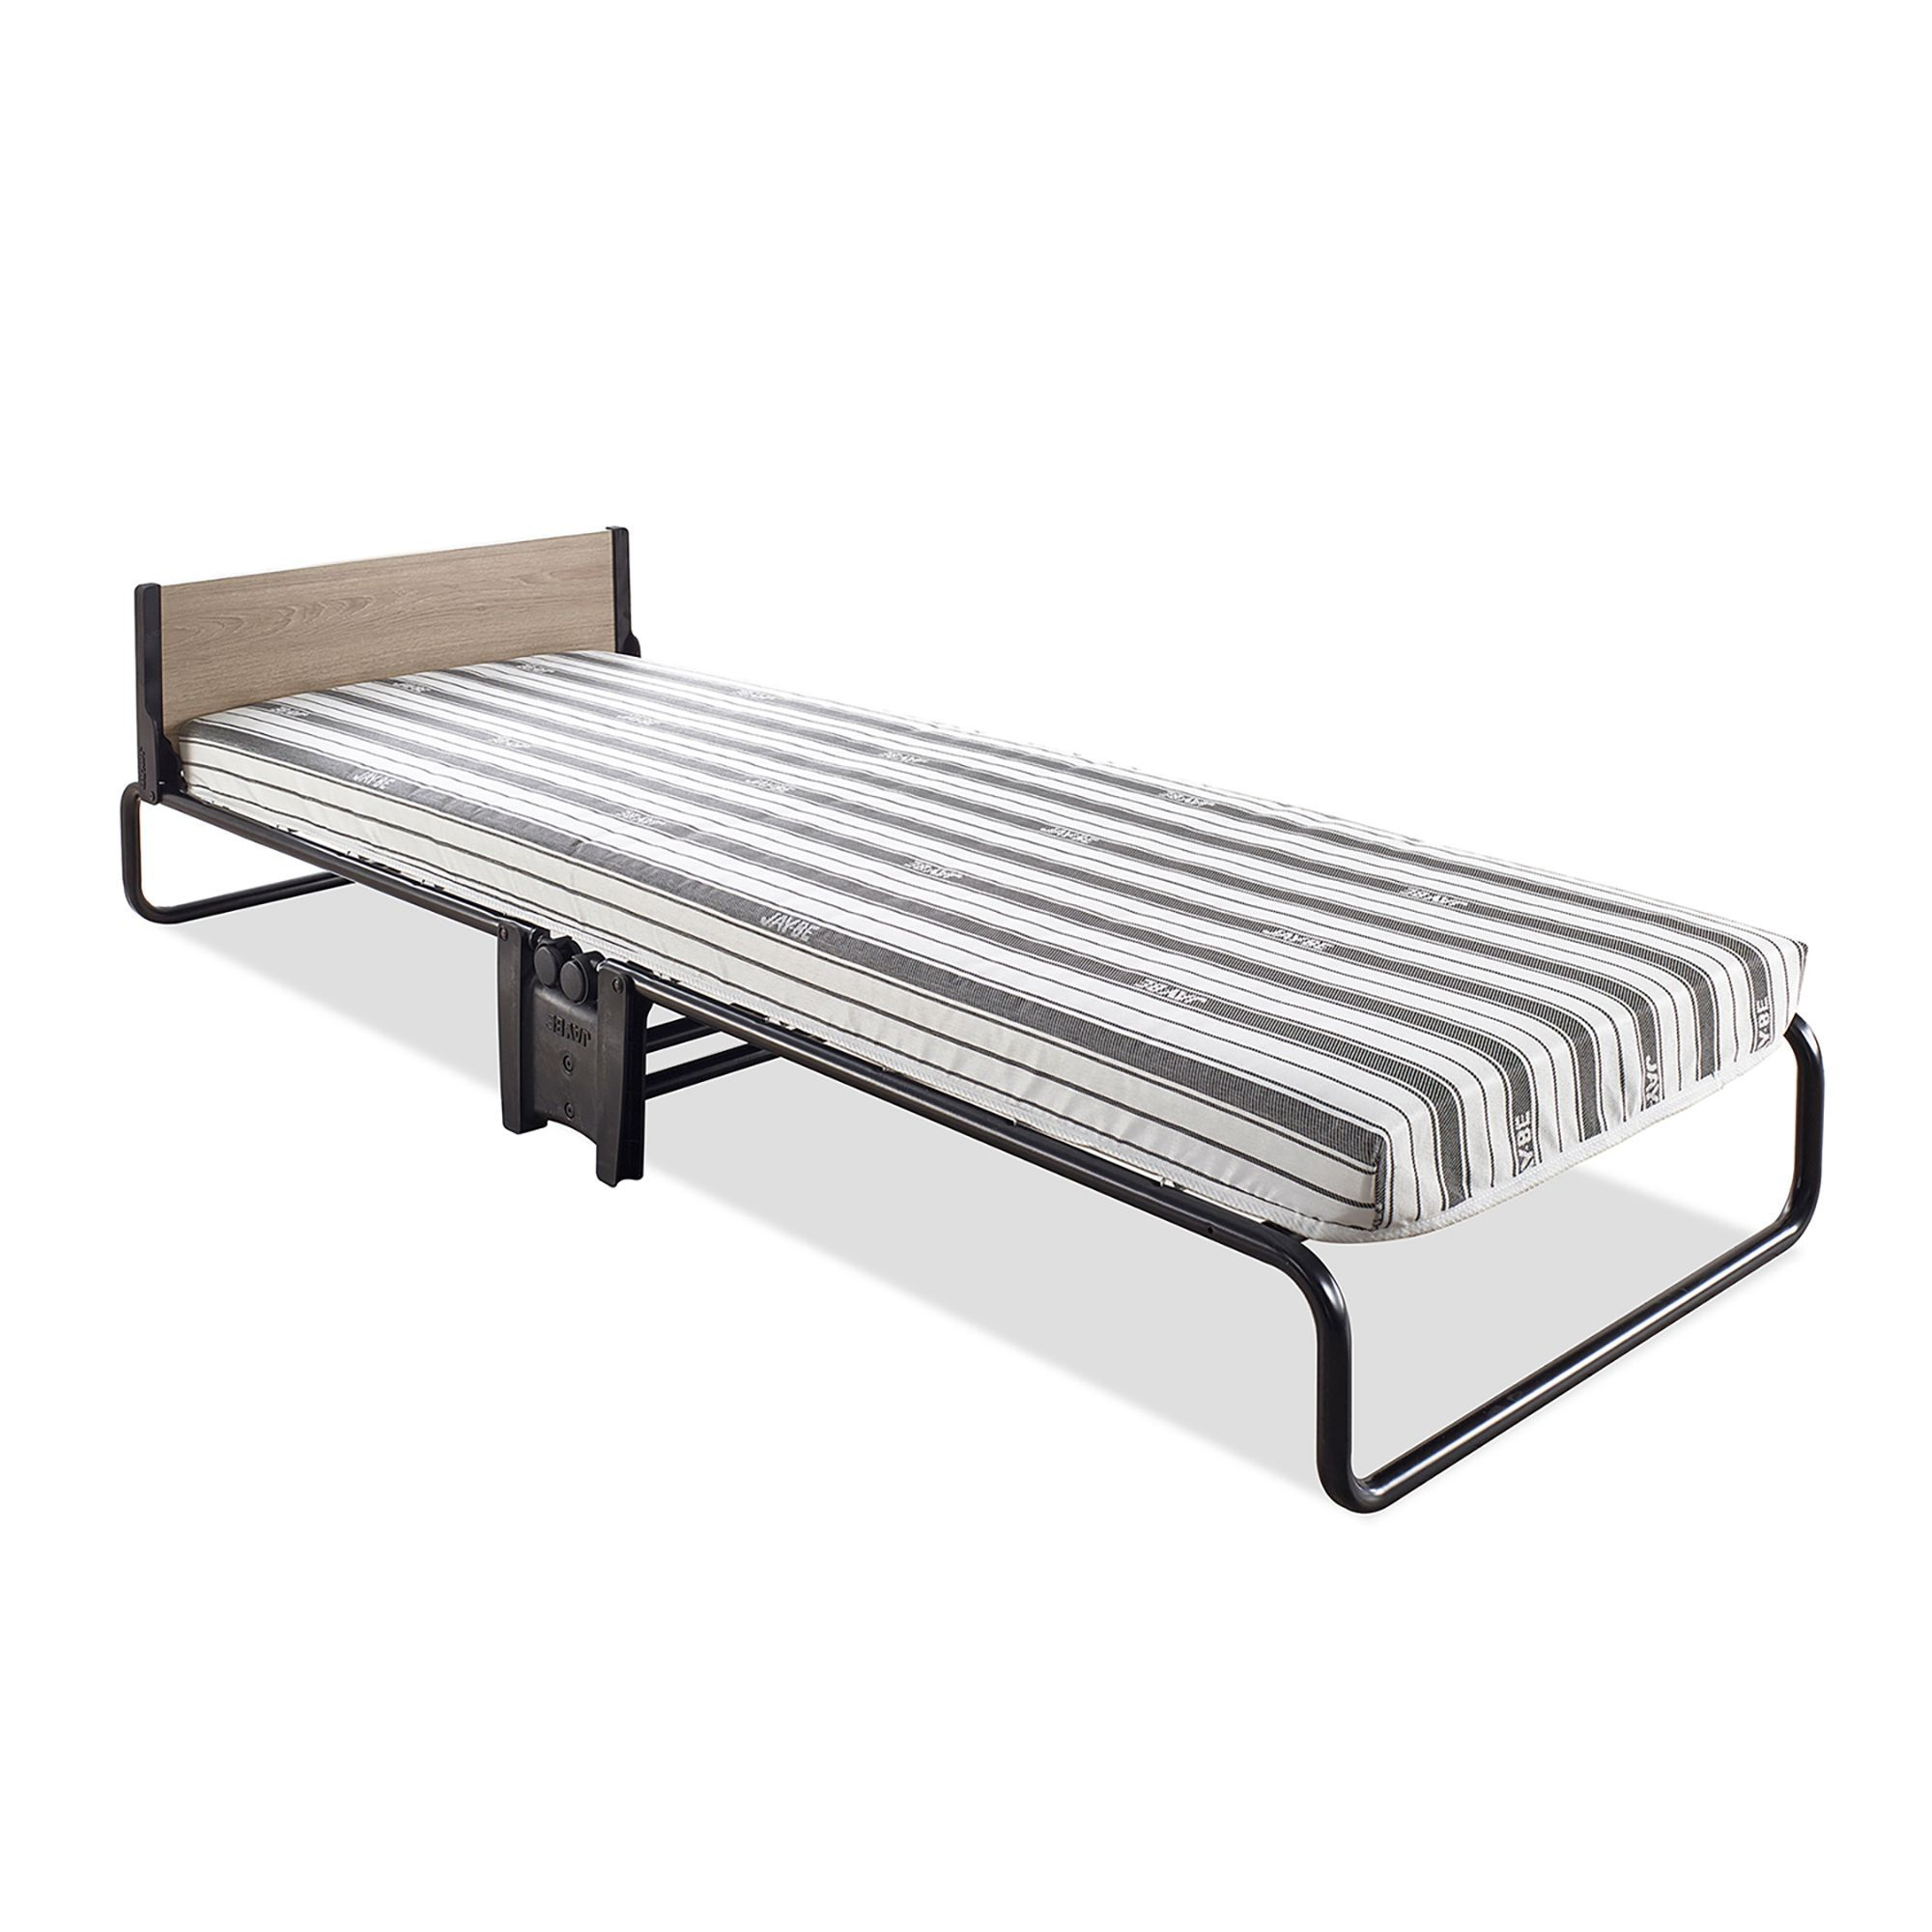 What Is The Length Of A Single Bed Jay Be Revolution Airflow Single Guest Bed With Airflow Mattress